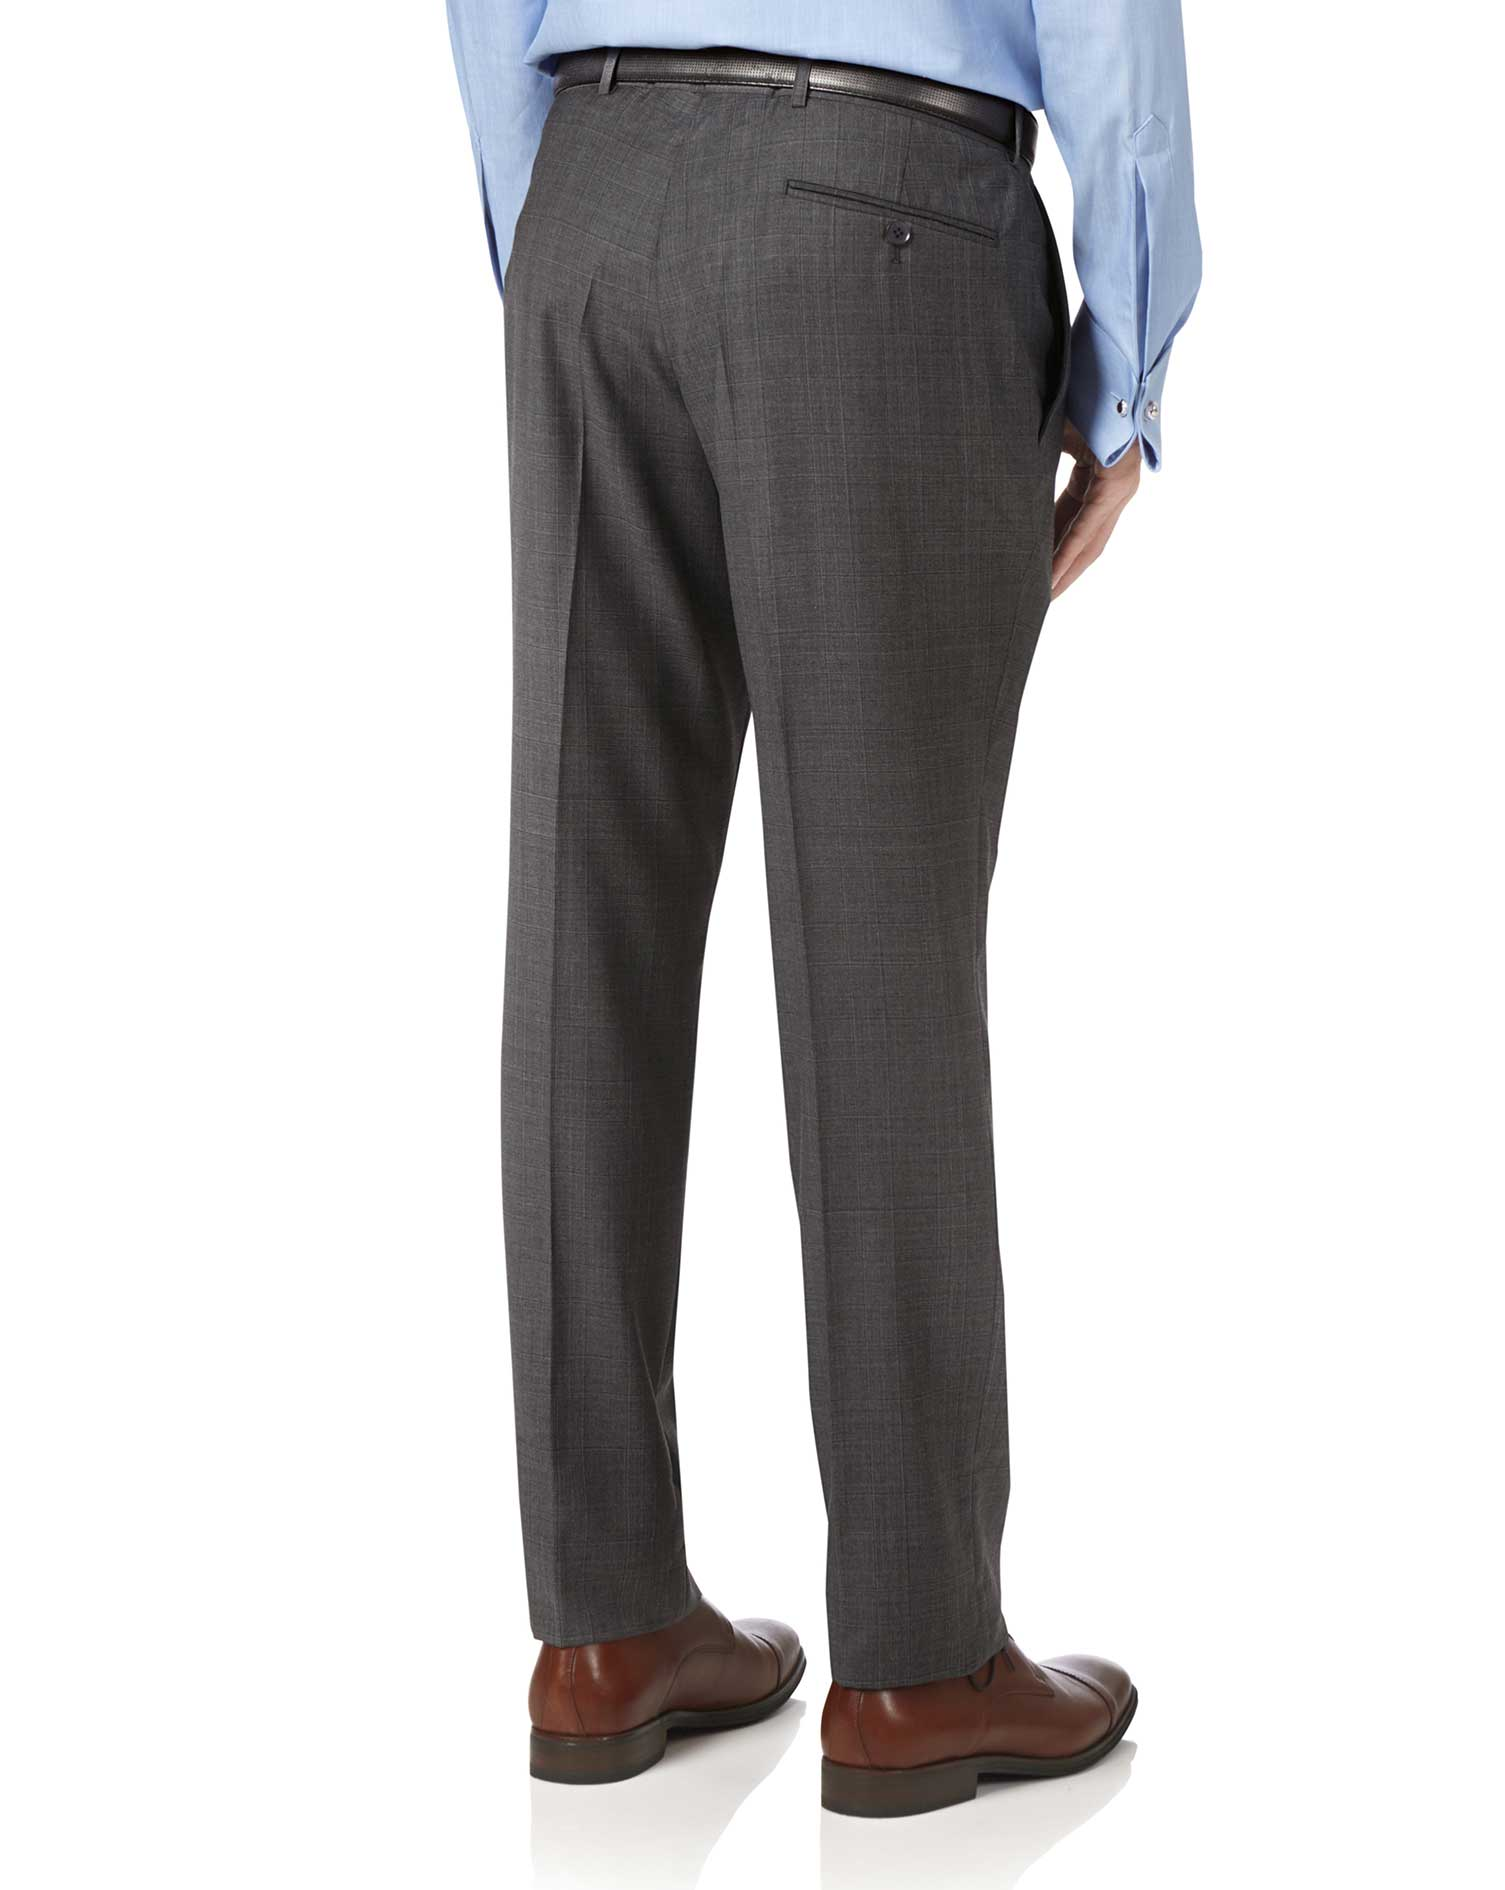 Grey slim fit luxury Italian check suit pants